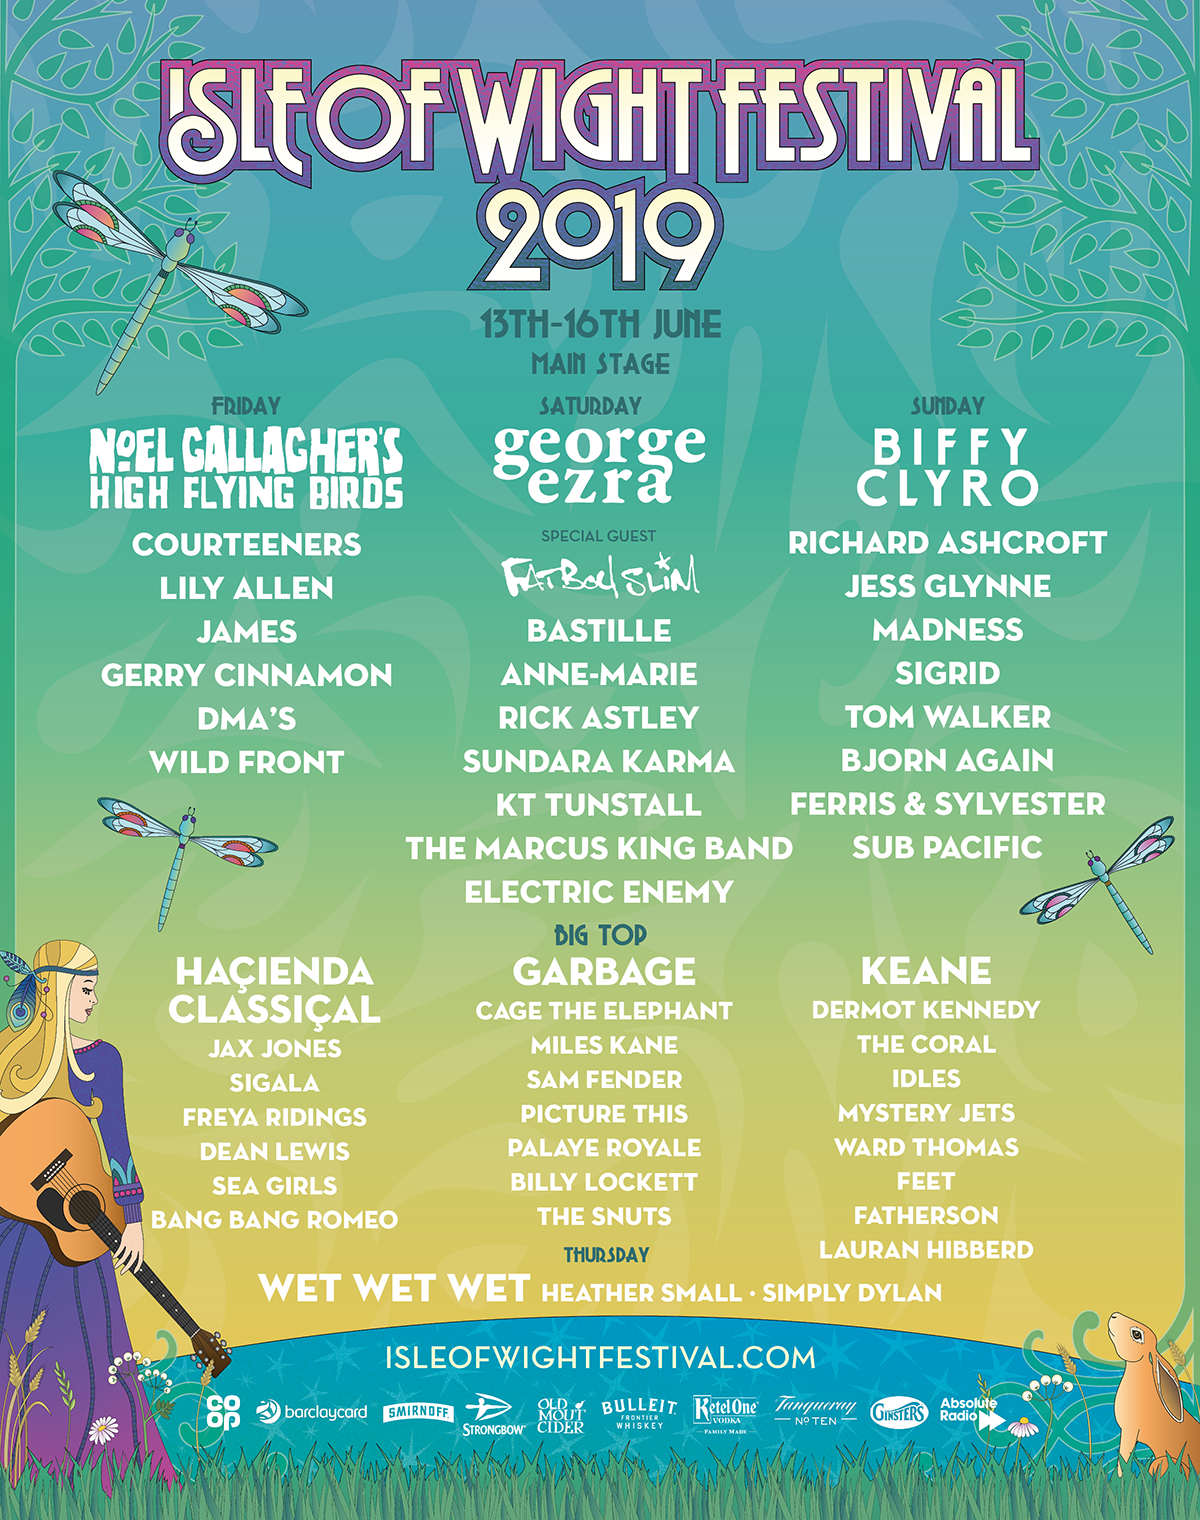 Isle of Wight Festival 2019 Lineup